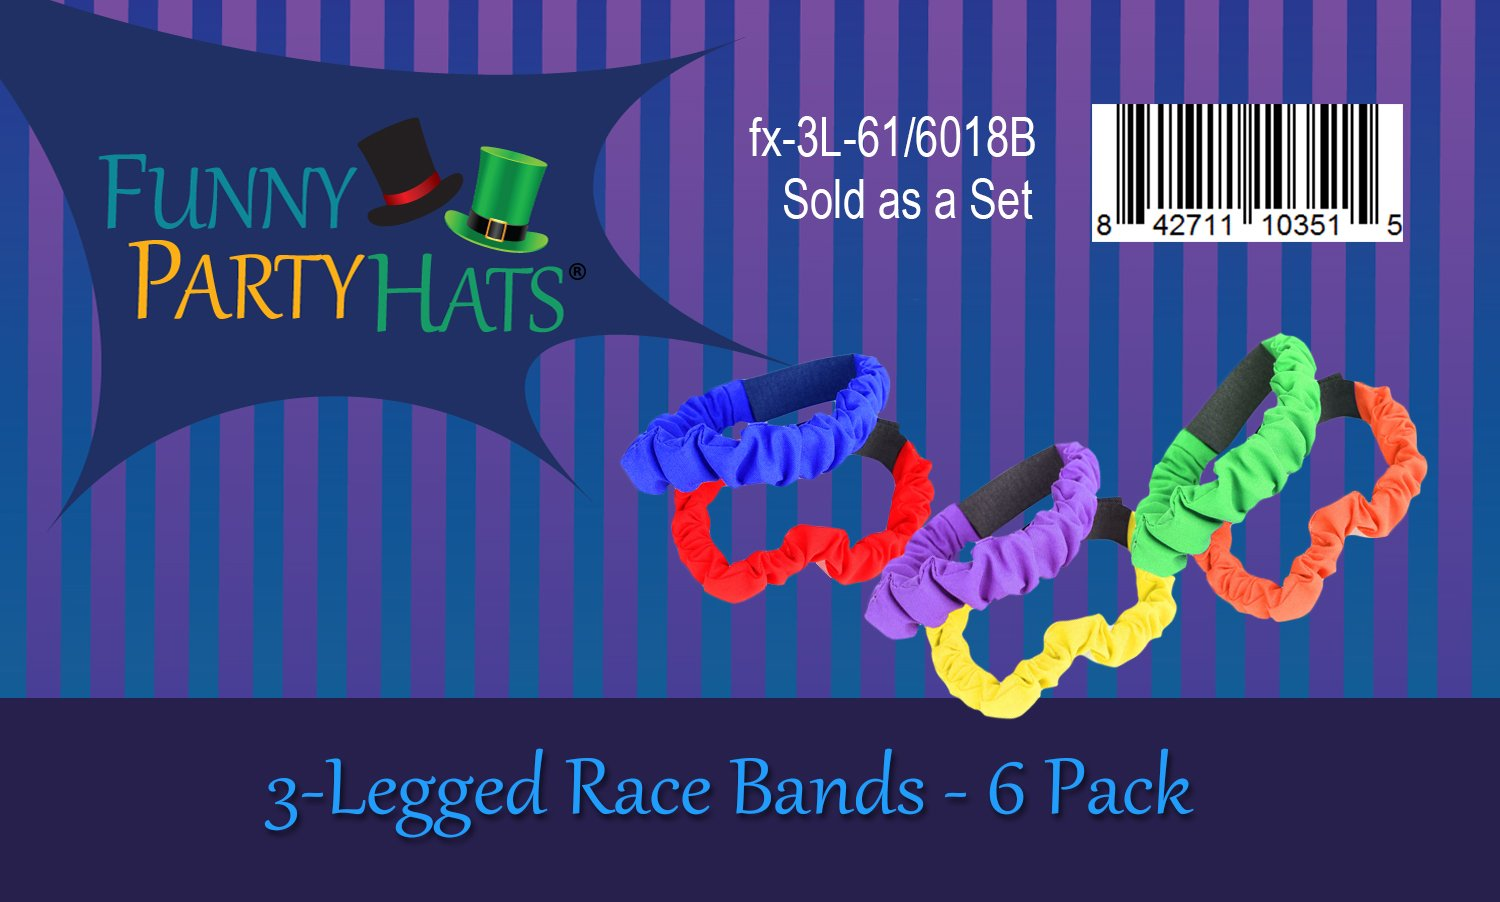 ToySharing 3 Legged Race Bands 6 Pack Durable Three Legged Race Bands Firm Soft